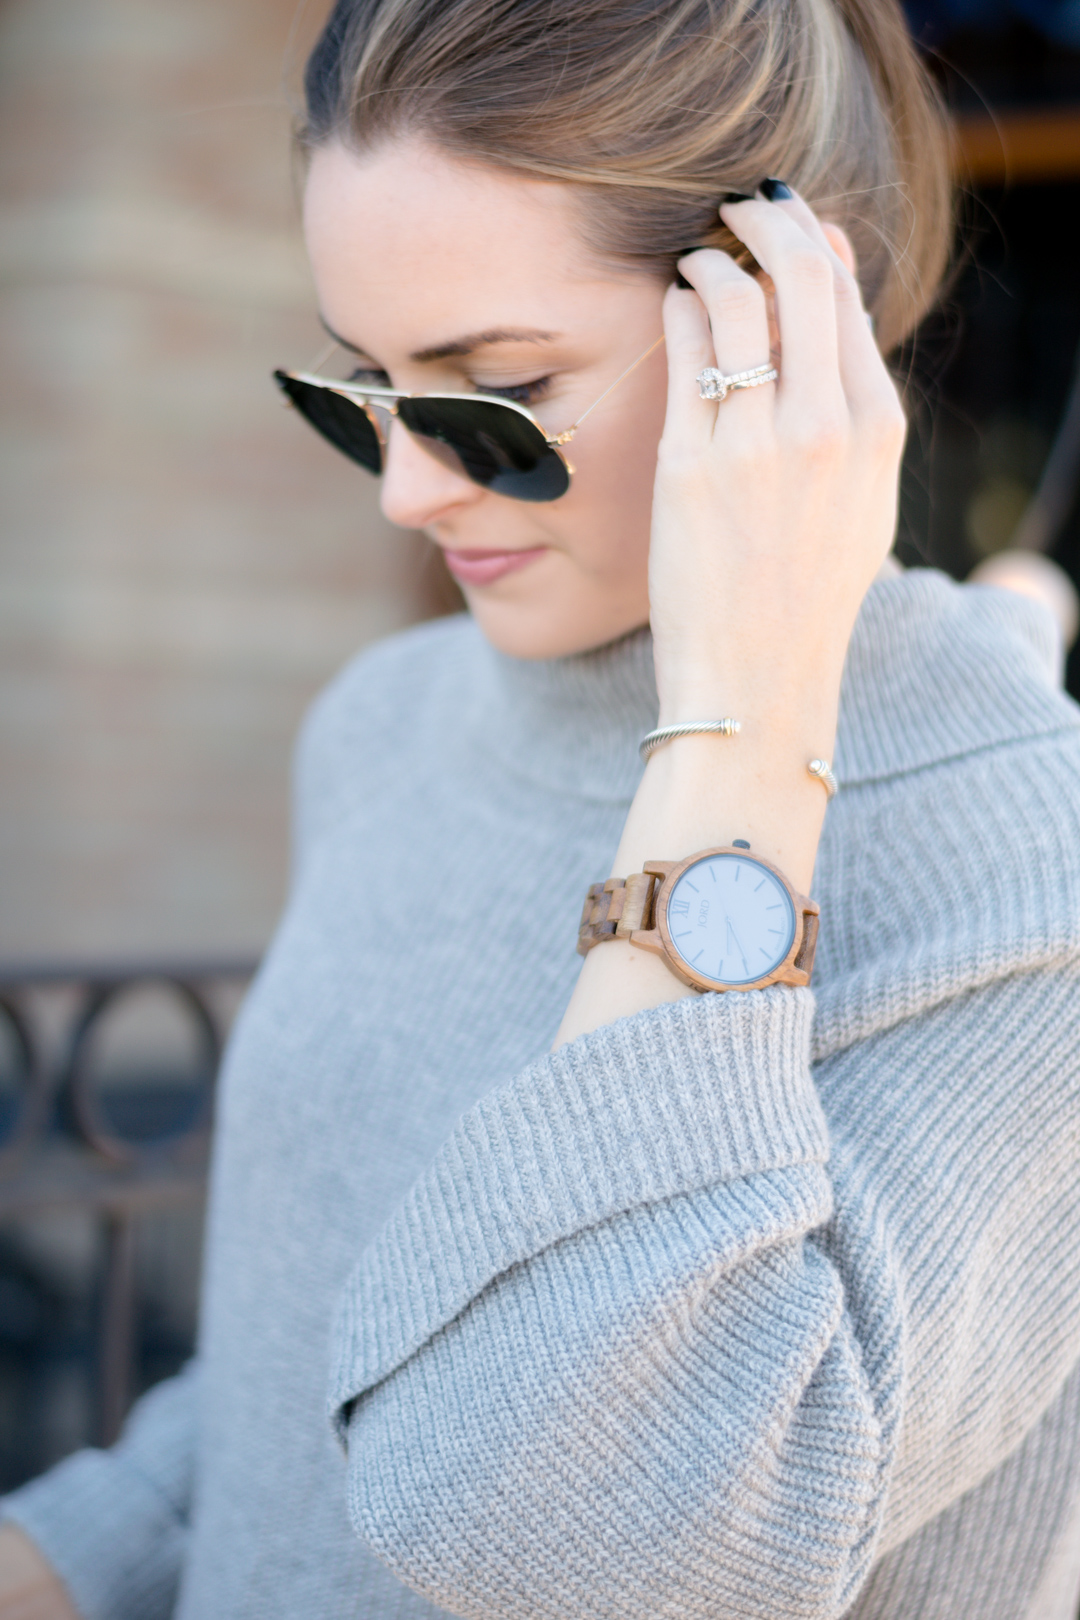 unique watch, cool watch, nordstrom leith cowl neck pullover, fall 2016 outfit, gray turtleneck outfit, wood watches, fall accessories, jord watch, frankie series watch